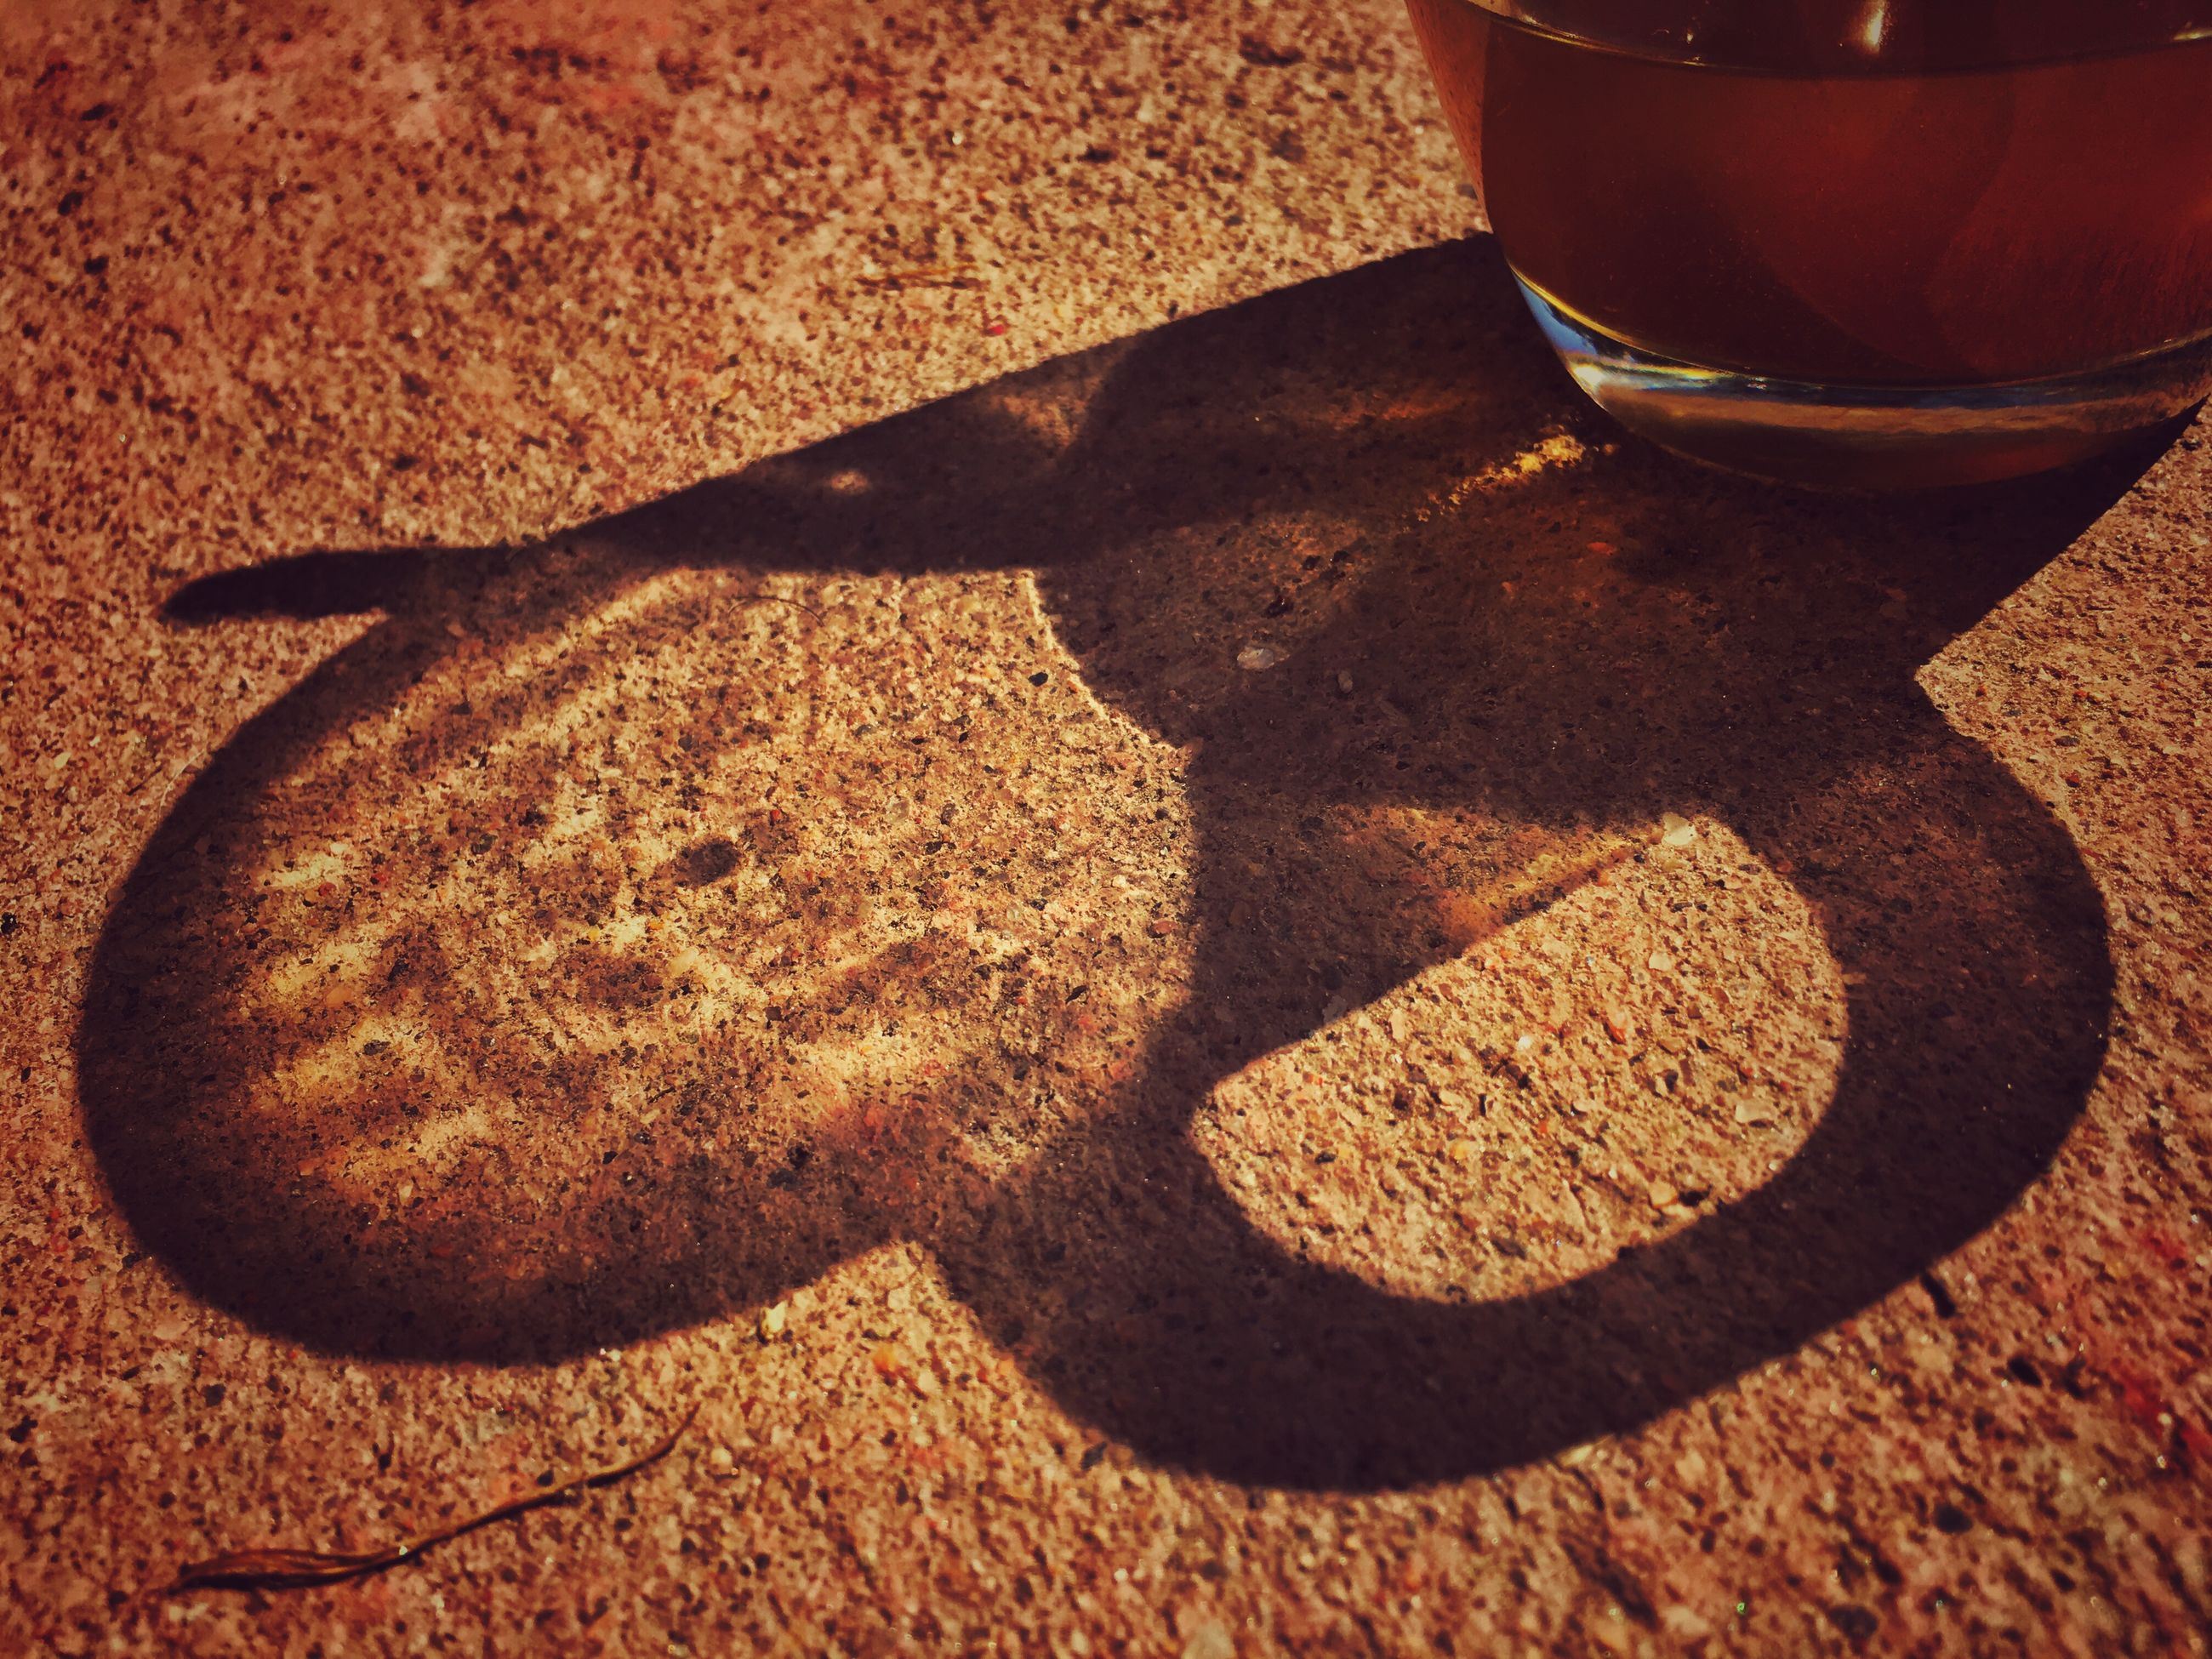 shadow, food and drink, sunlight, high angle view, no people, food, close-up, sand, day, freshness, nature, indoors, animal themes